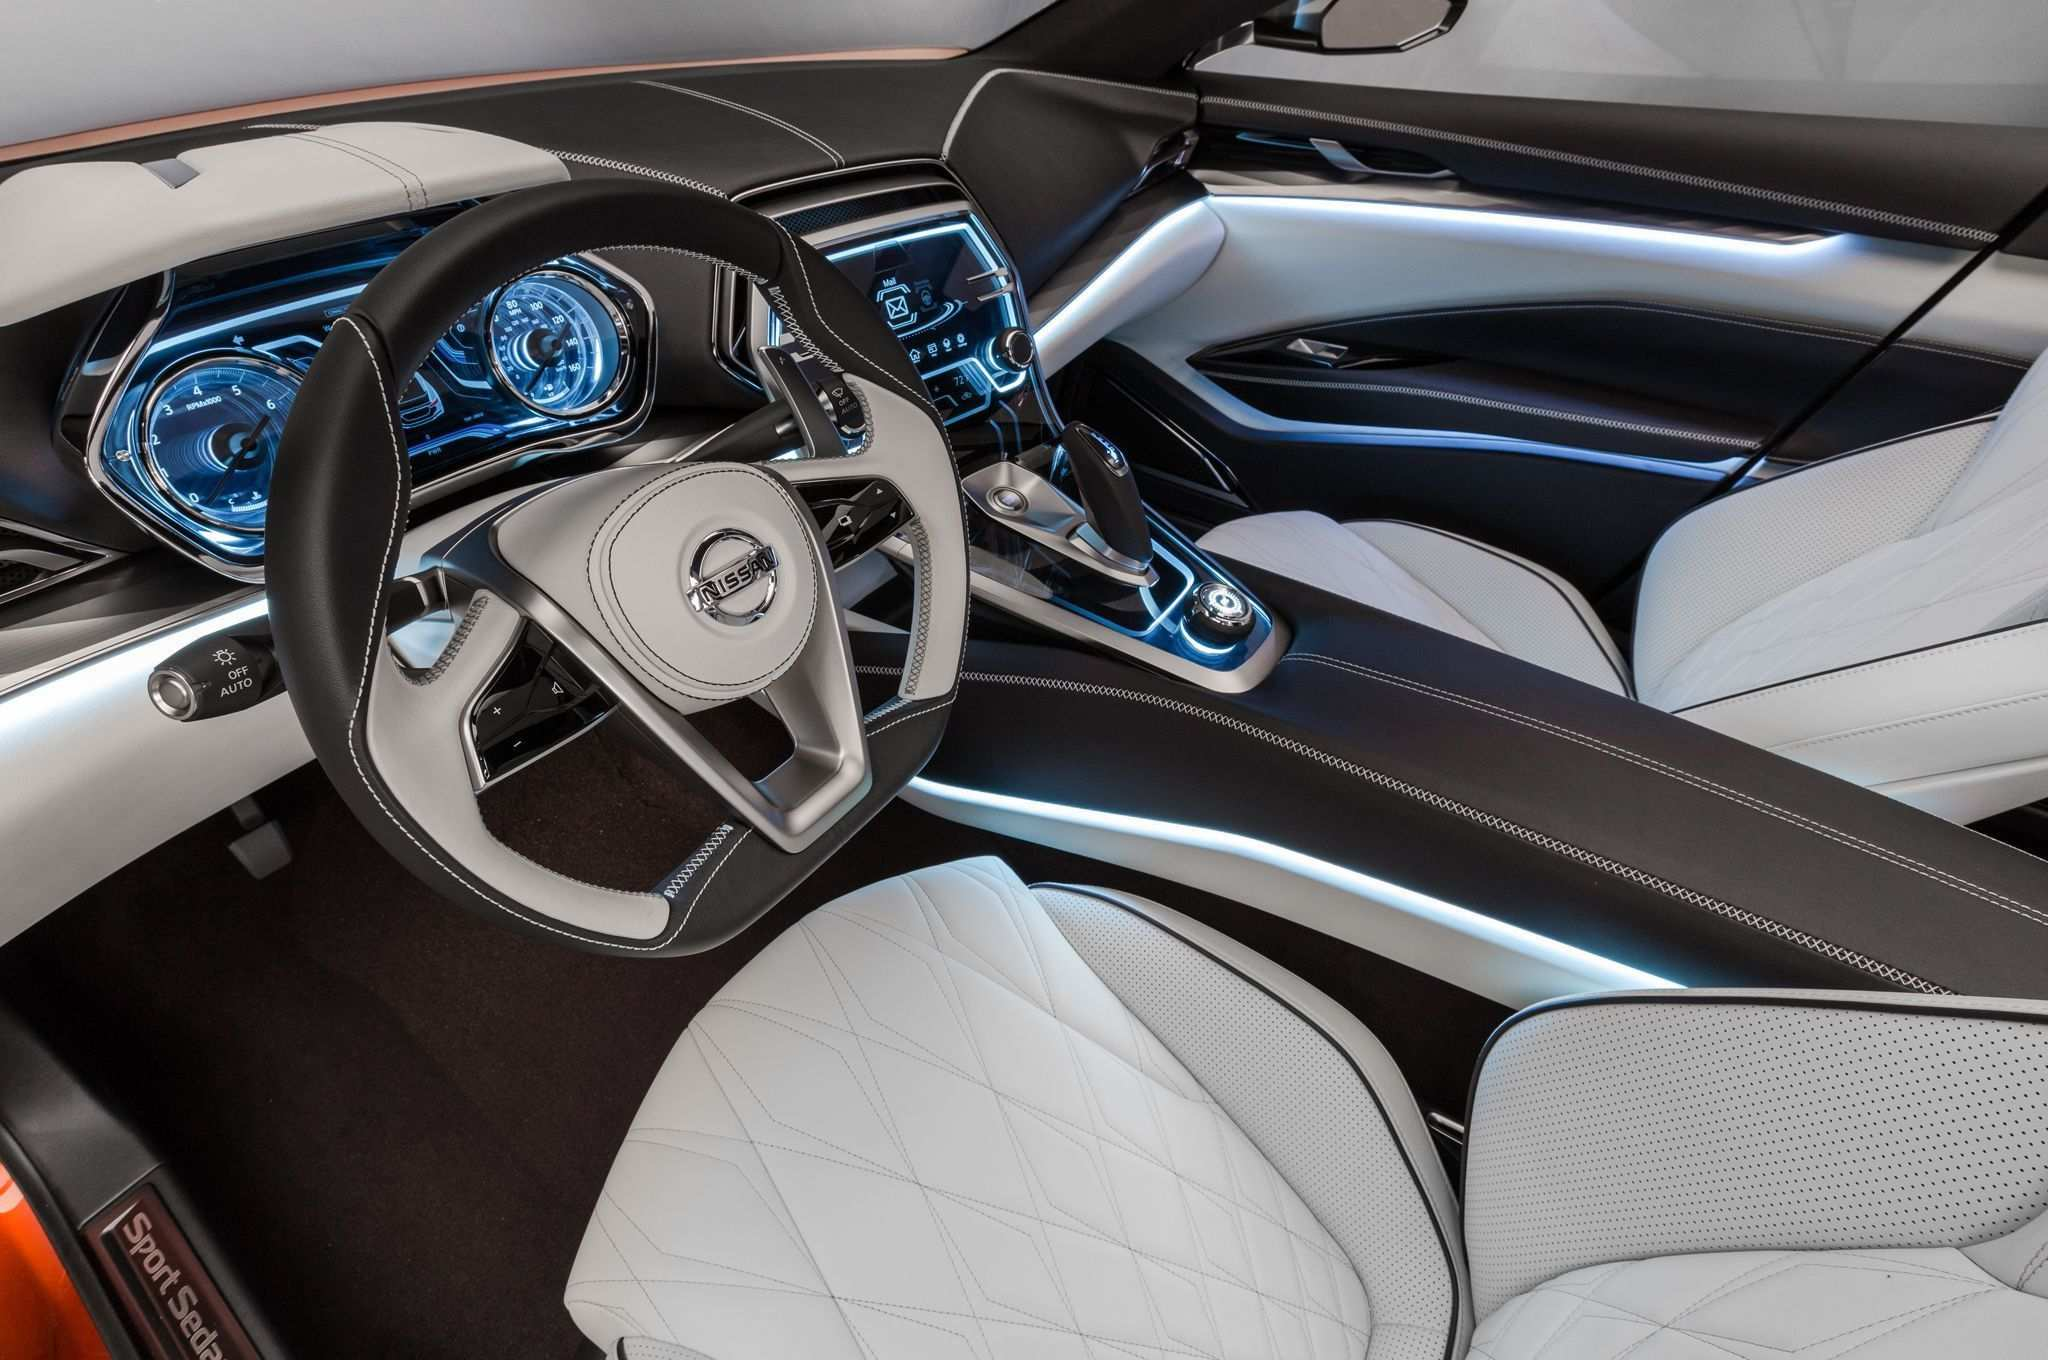 99 The 2020 Nissan Altima Interior Model